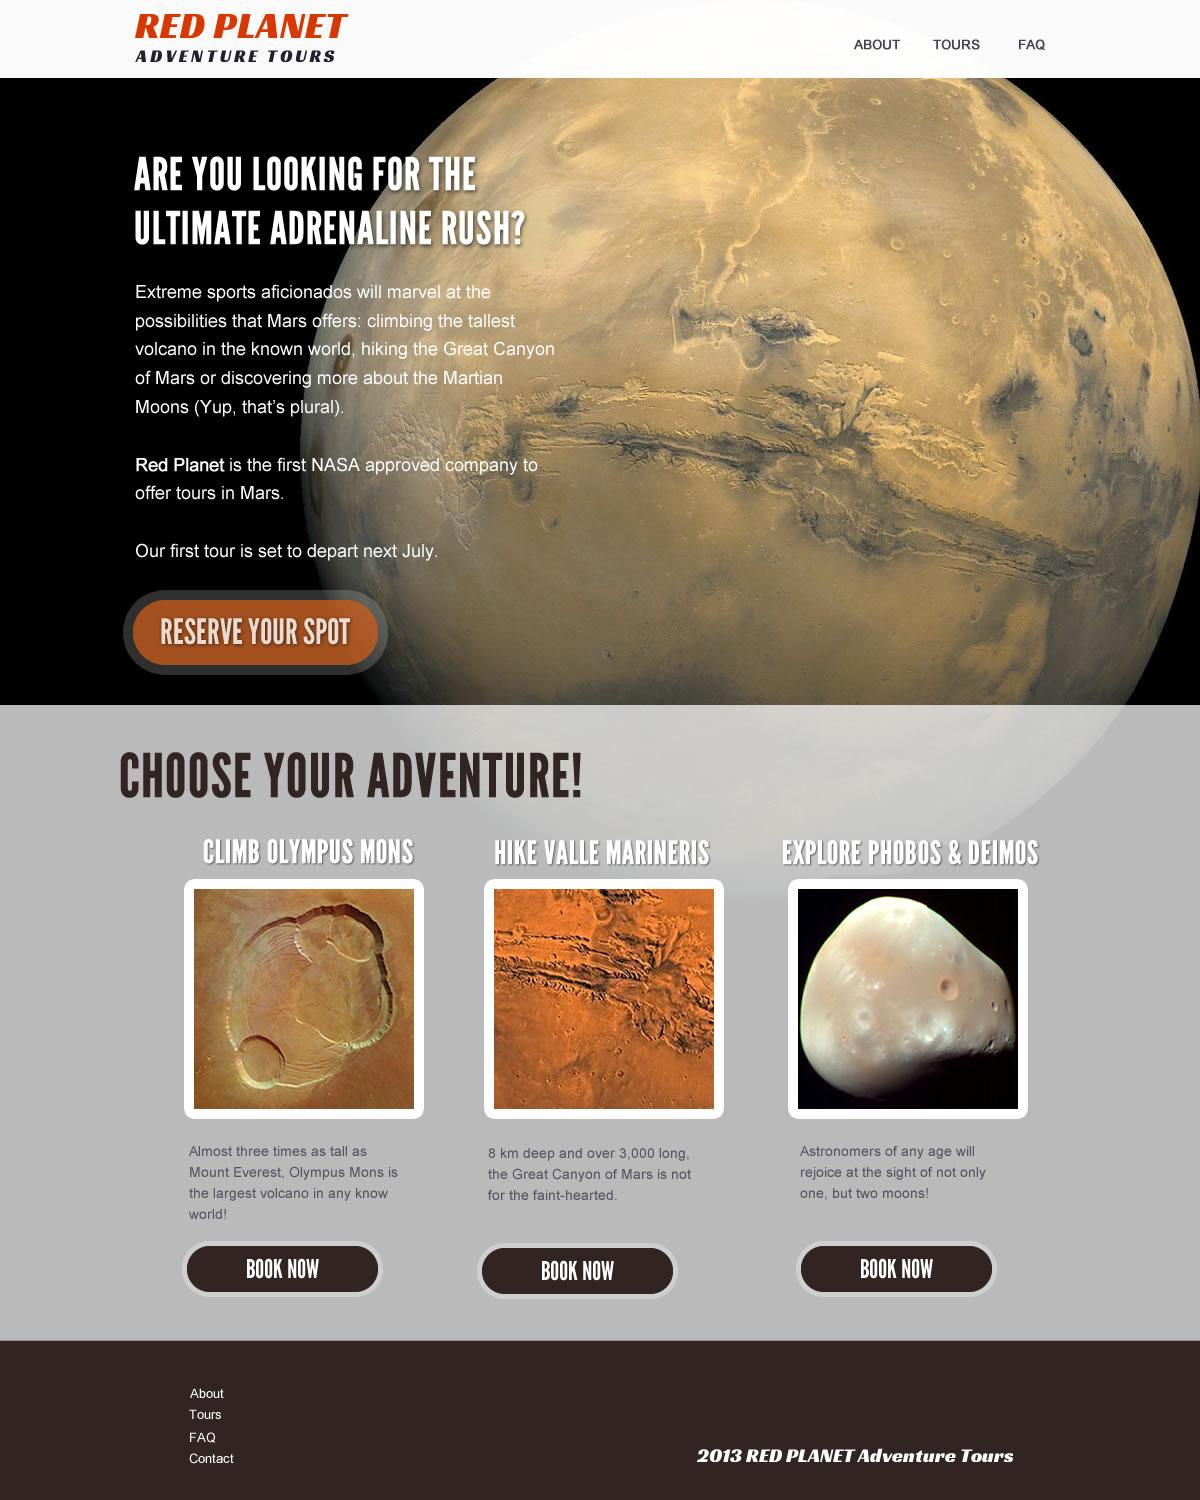 Red Planet Adventures Tours - image 1 - student project